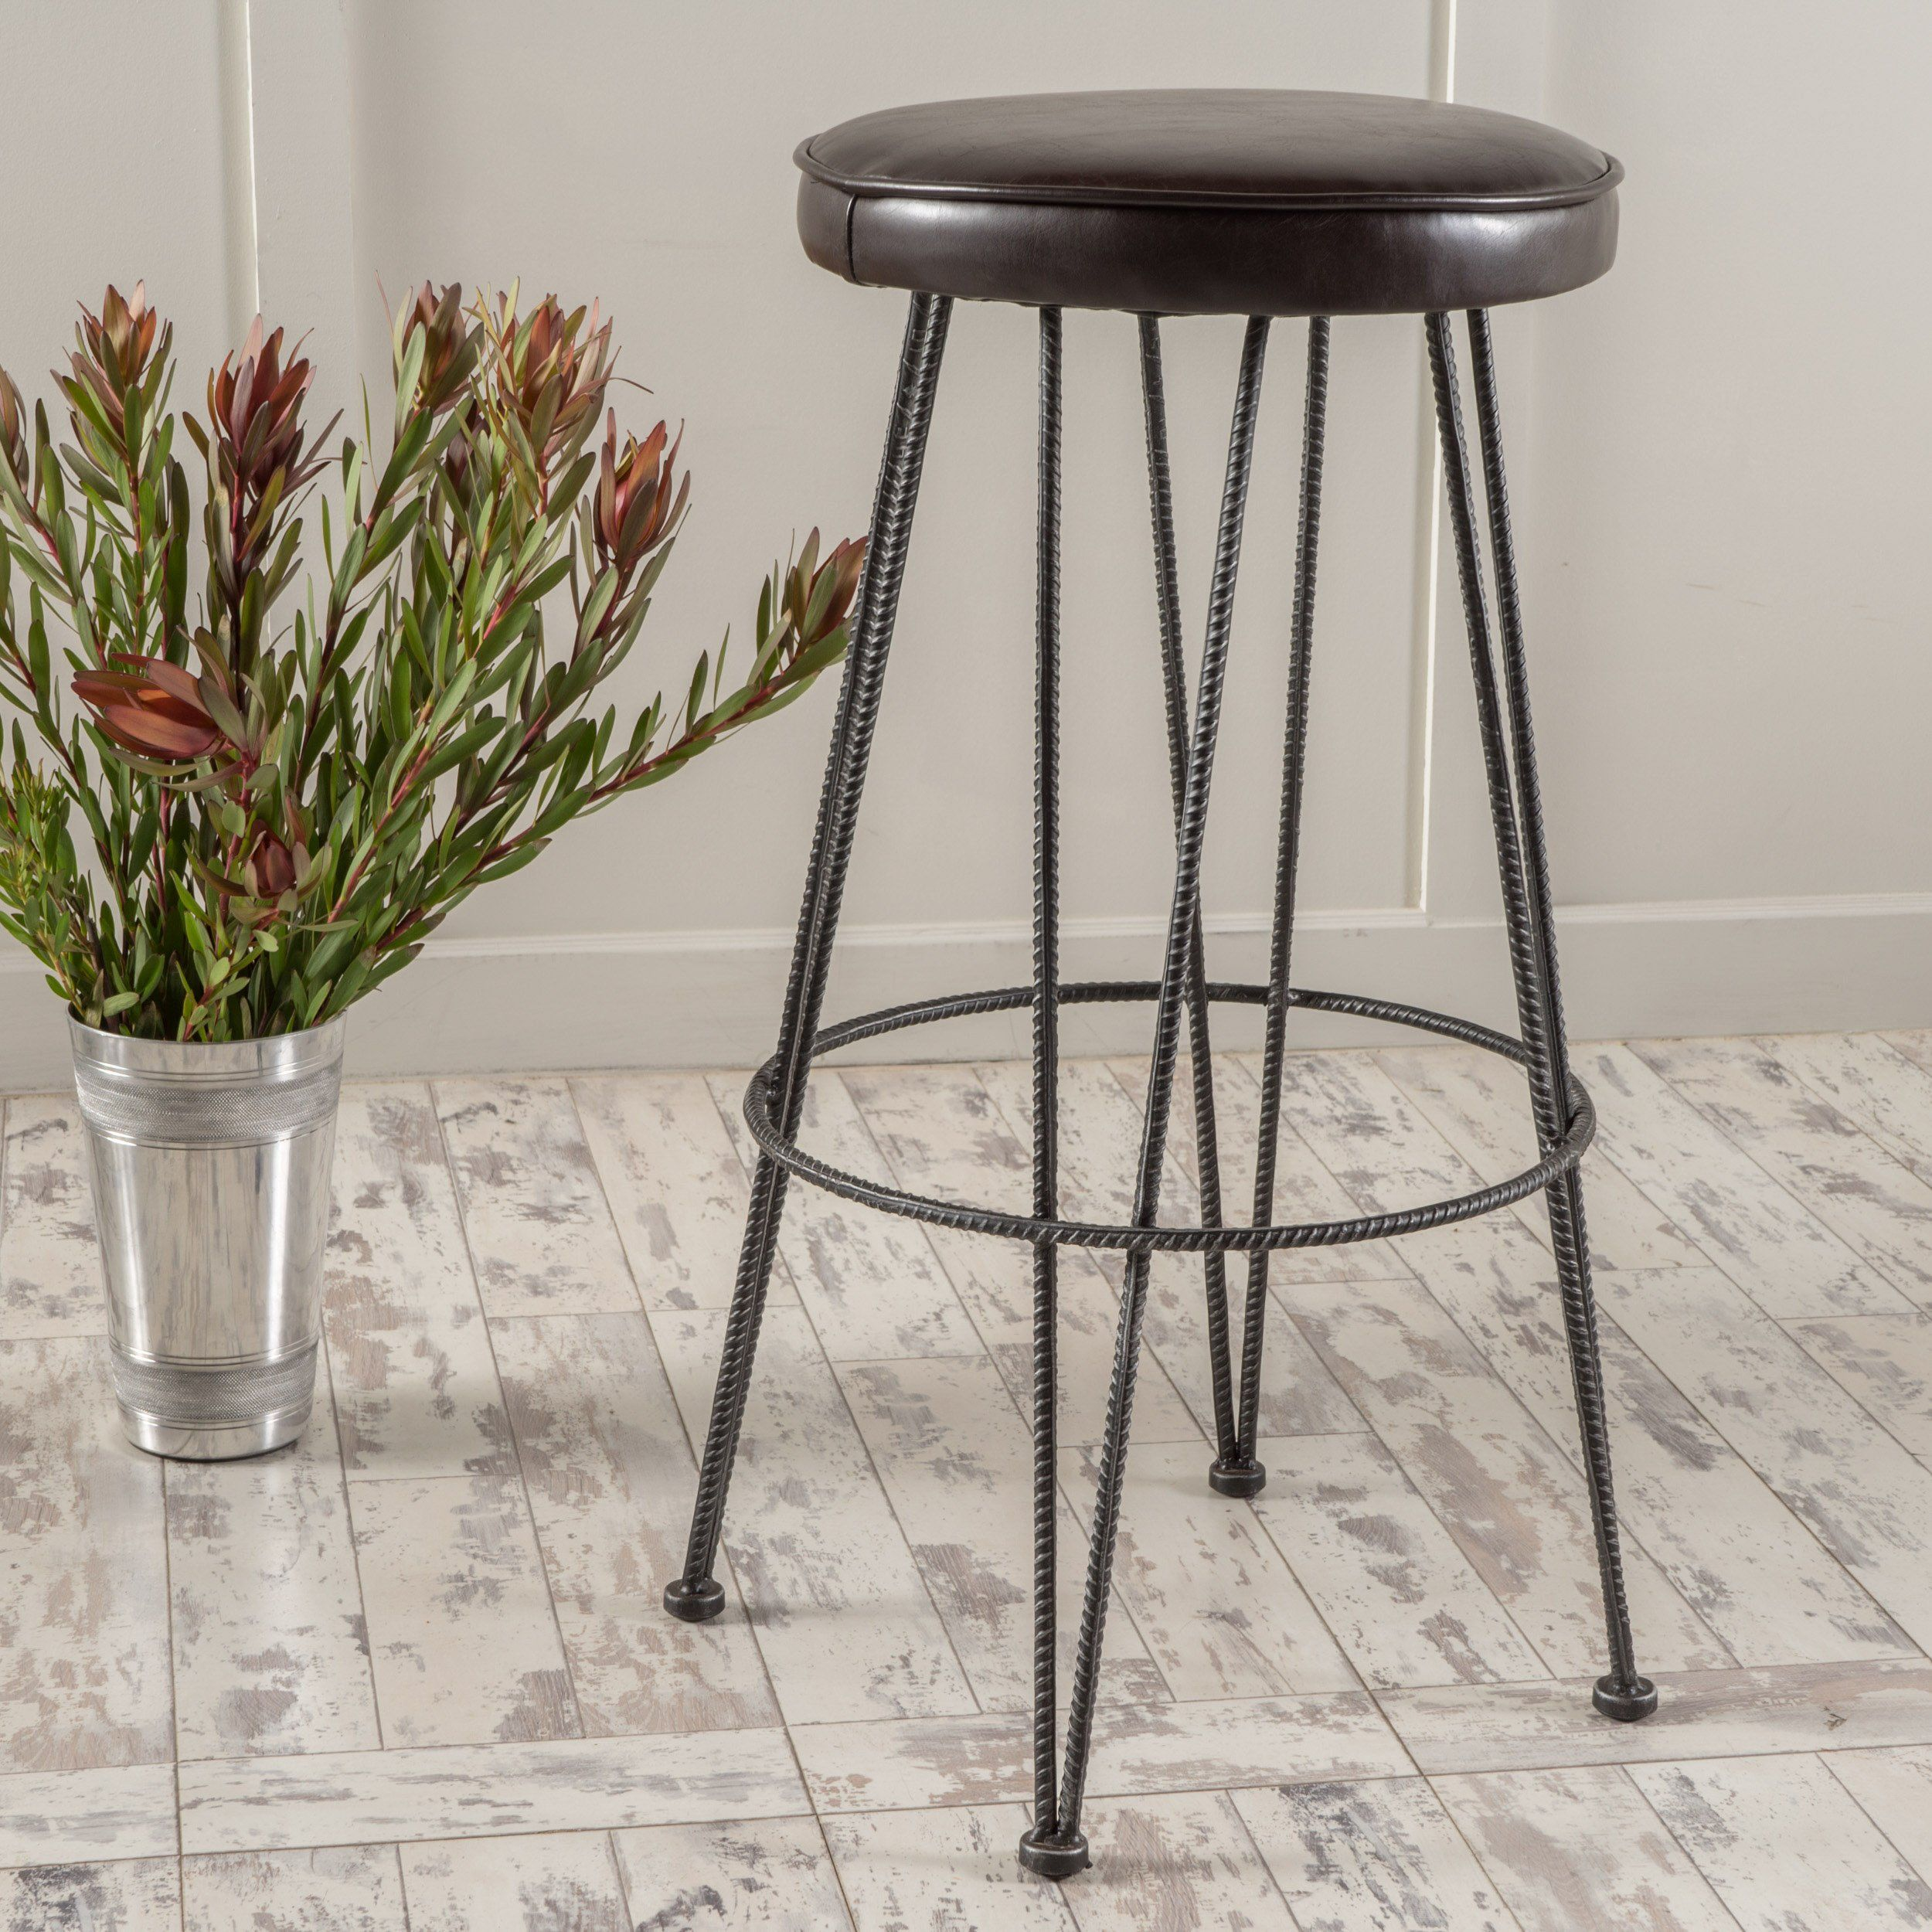 Best Selling Home Anjeli Metal Bar Stool With Cushion, Naturally